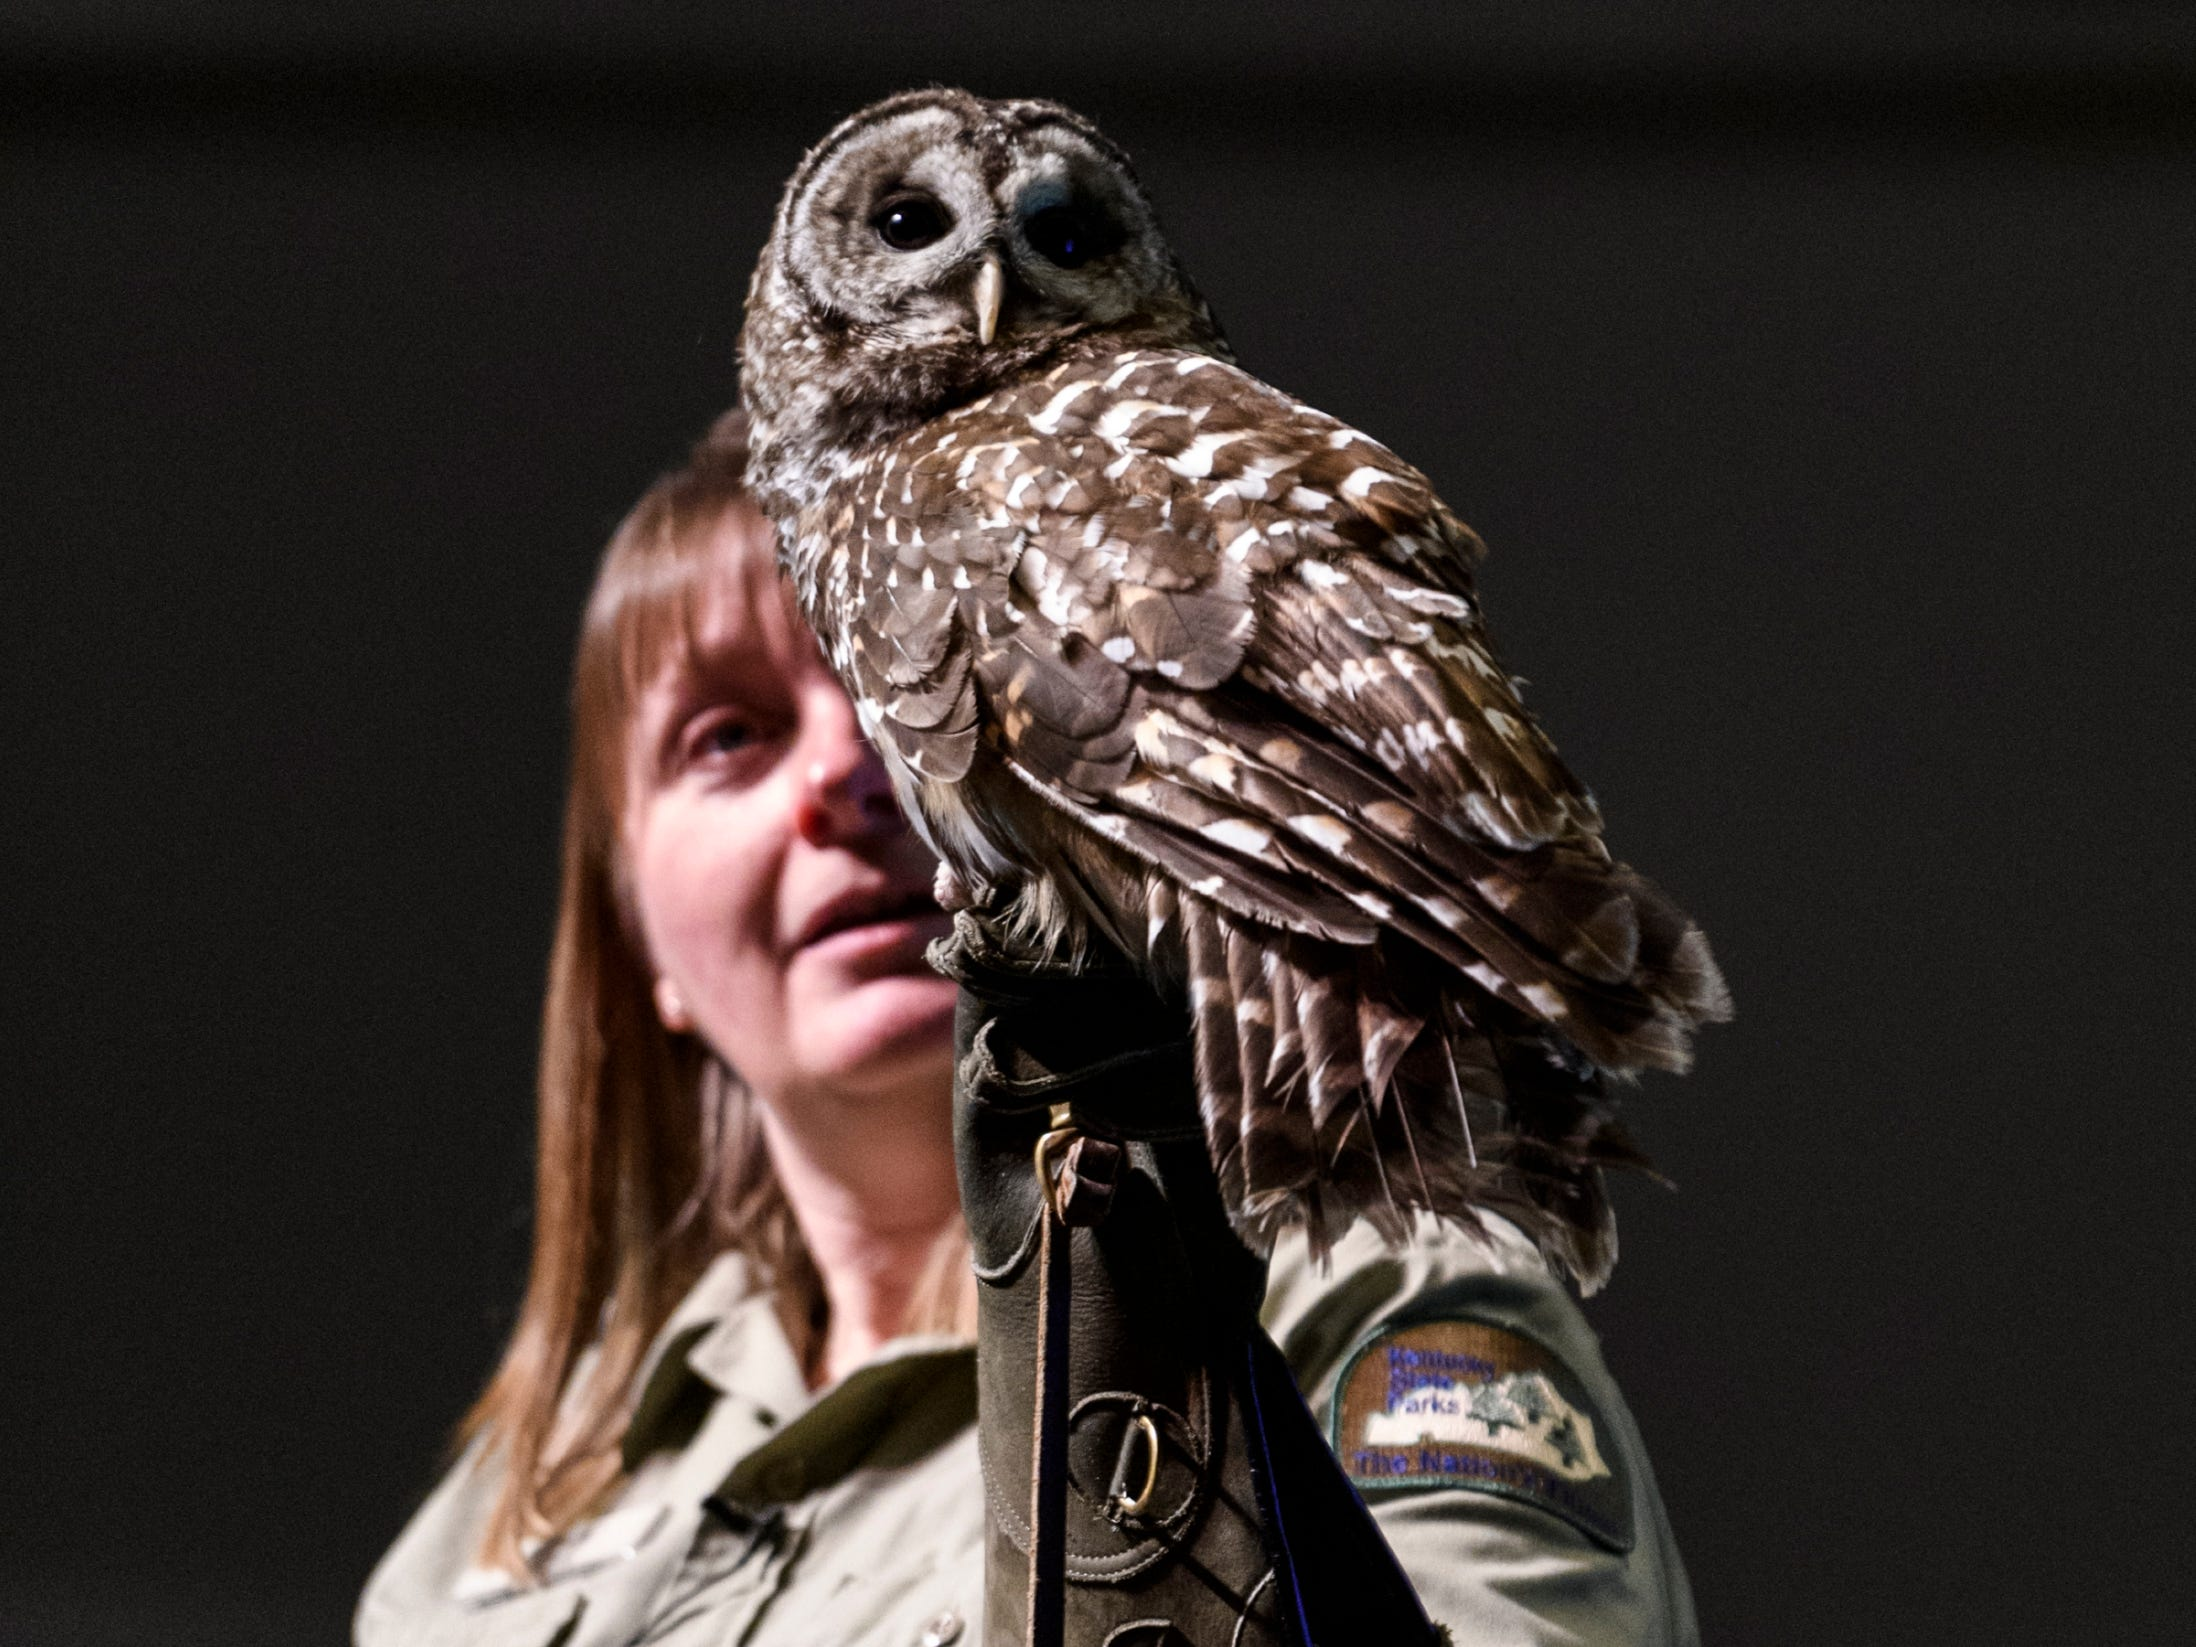 Lisa Hoffman of John James Audubon State Park shows off a live Barred Owl to the crowd attending a Family Night for Cairo and Jefferson Elementary school students at Henderson Community College's Preston Arts Center in Henderson, Thursday, Jan. 24, 2019. The students were invited to participate in nature education activities and see the National Geographic Photo Ark exhibit by photographer Joel Sartore, which will be on display for the public until March 15.